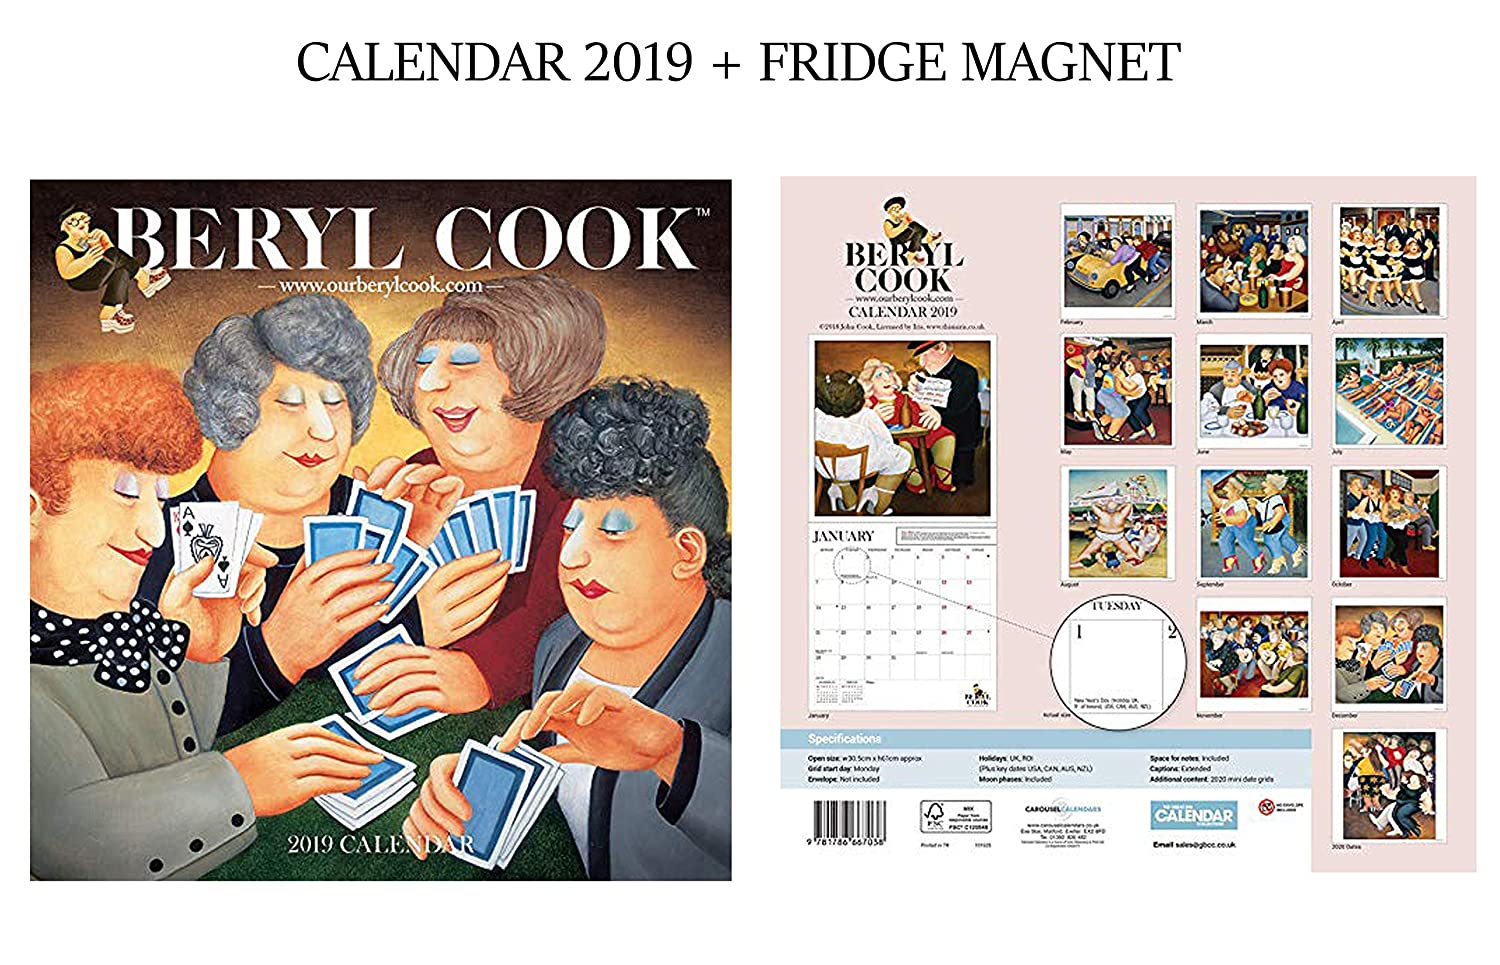 Beryl Cook Official Calendar 2019 + Beryl Cook Fridge Magnet GIFTSCITY